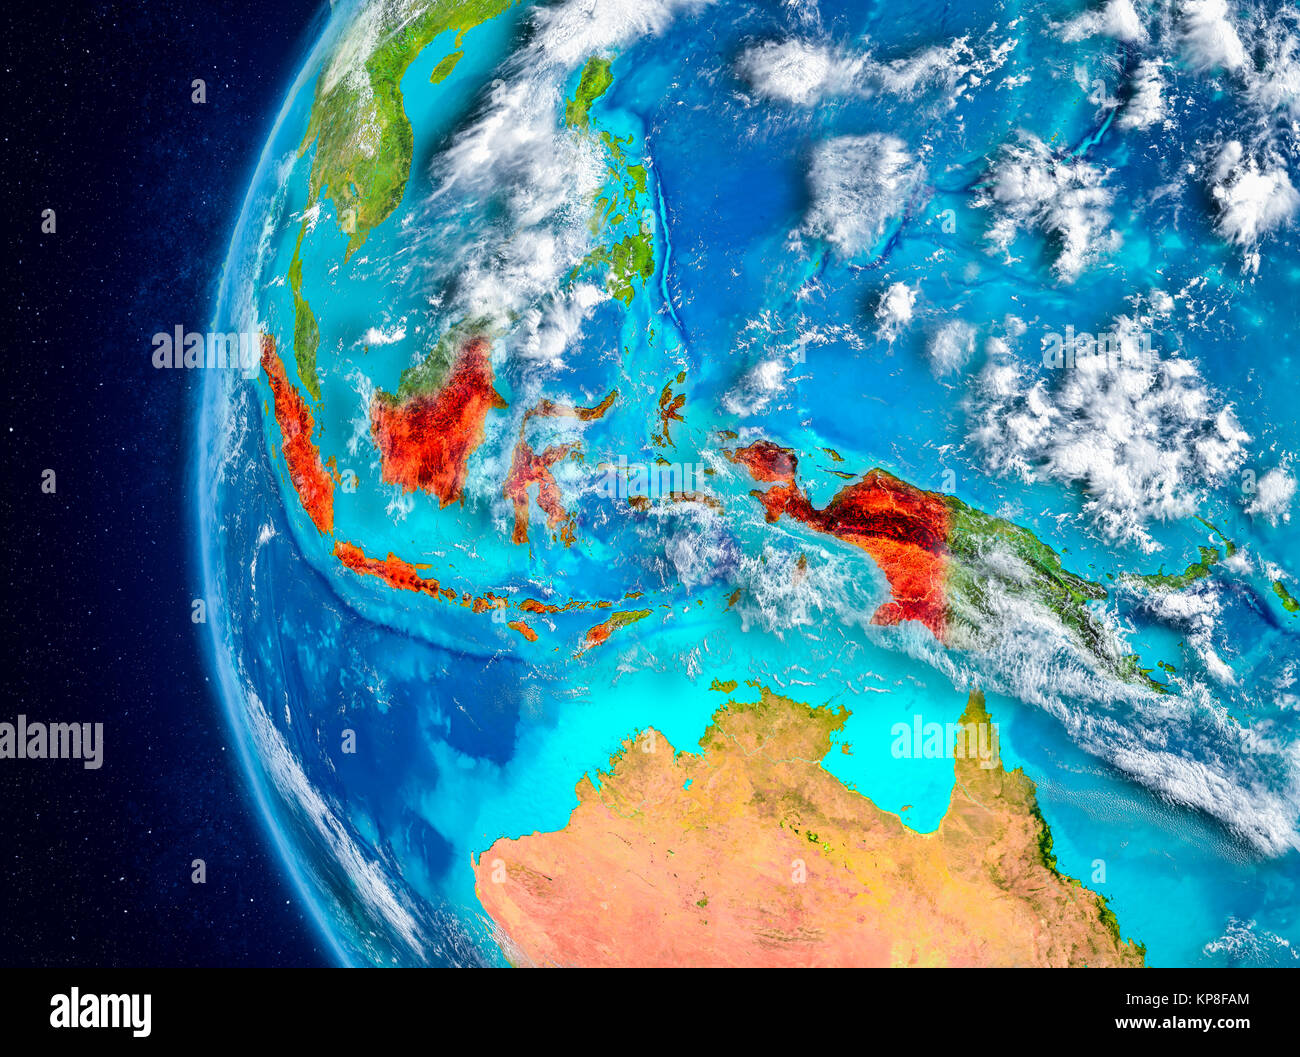 Map of Indonesia as seen from space on plaEarth with clouds